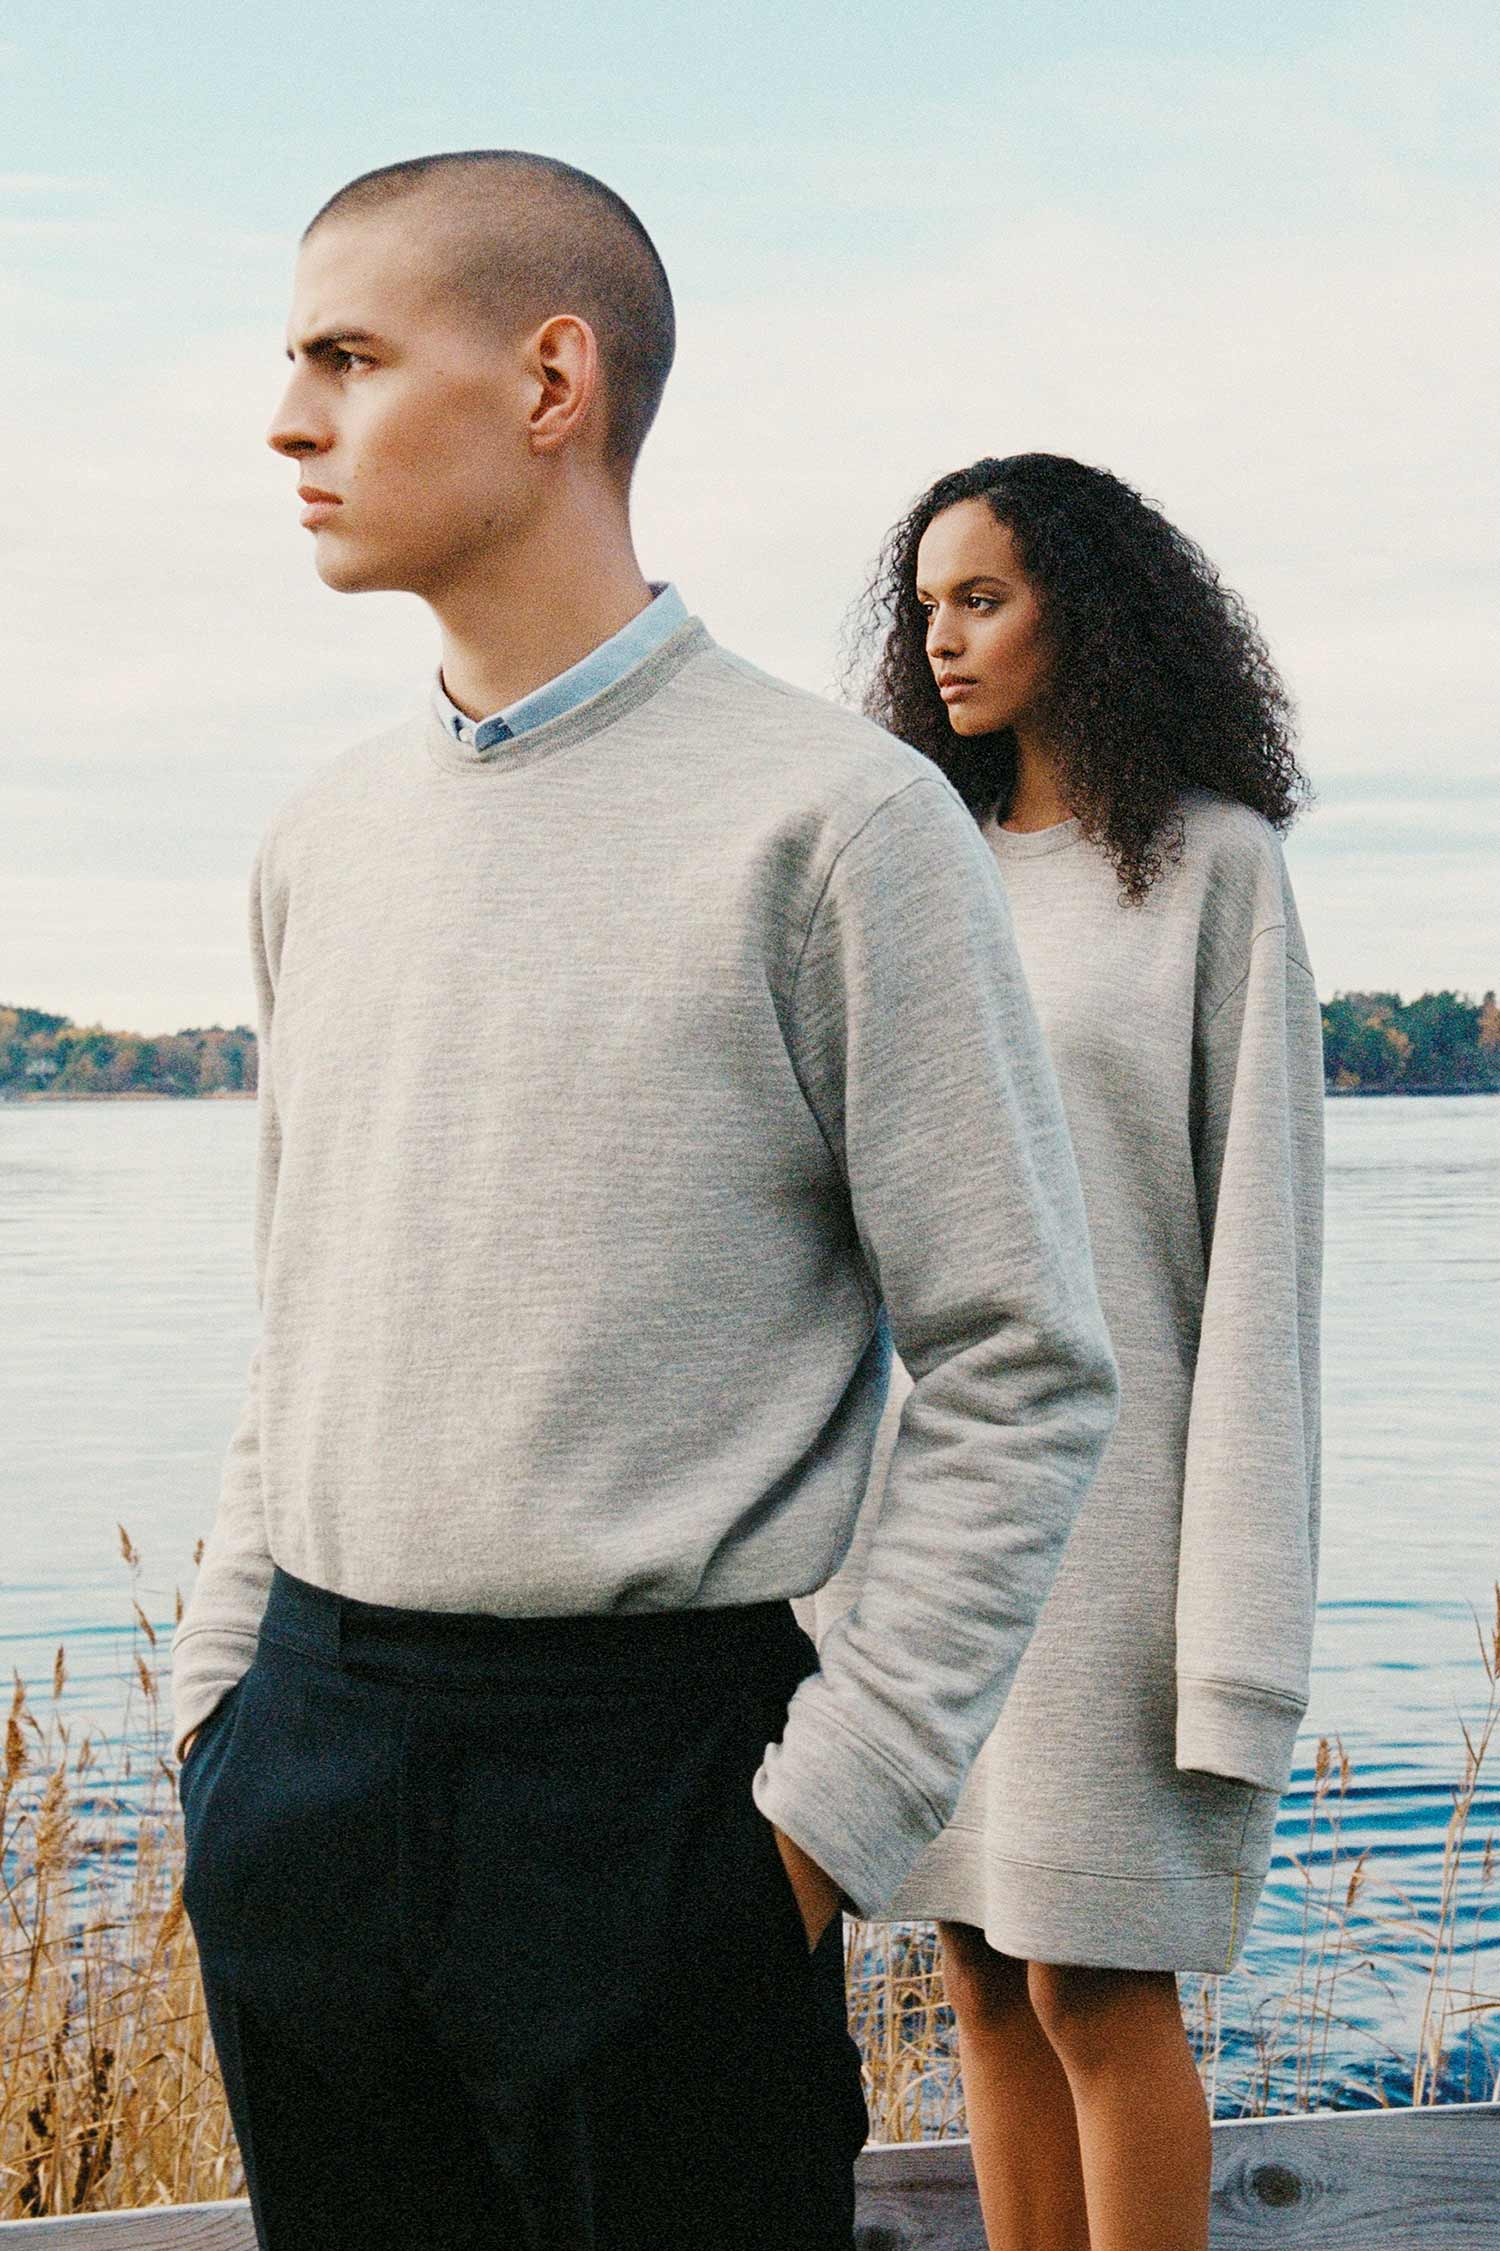 A man with a shaved head of white Swedish descent and a woman of Swedish African descent stand side by side, wearing grey sweatshirts made from 100% Swedish wool, looking into the distance, against water of a lake in the Stockholm archipelago